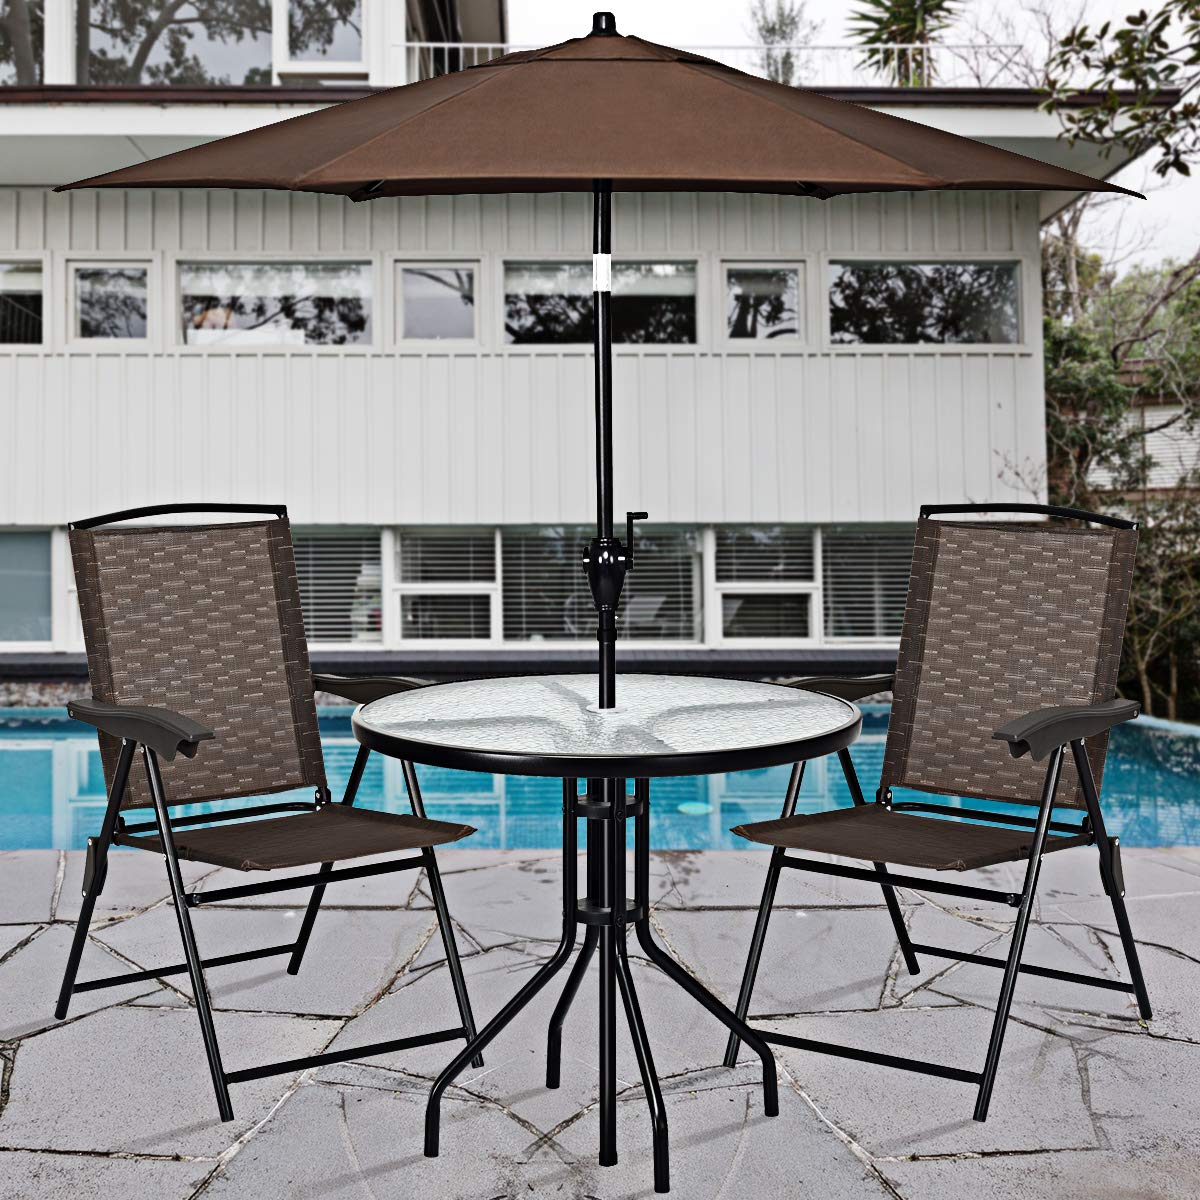 Goplus Sets of 4 Folding Sling Chairs Portable Chairs for Patio Garden Pool Outdoor & Indoor w/Armrests by Goplus (Image #2)